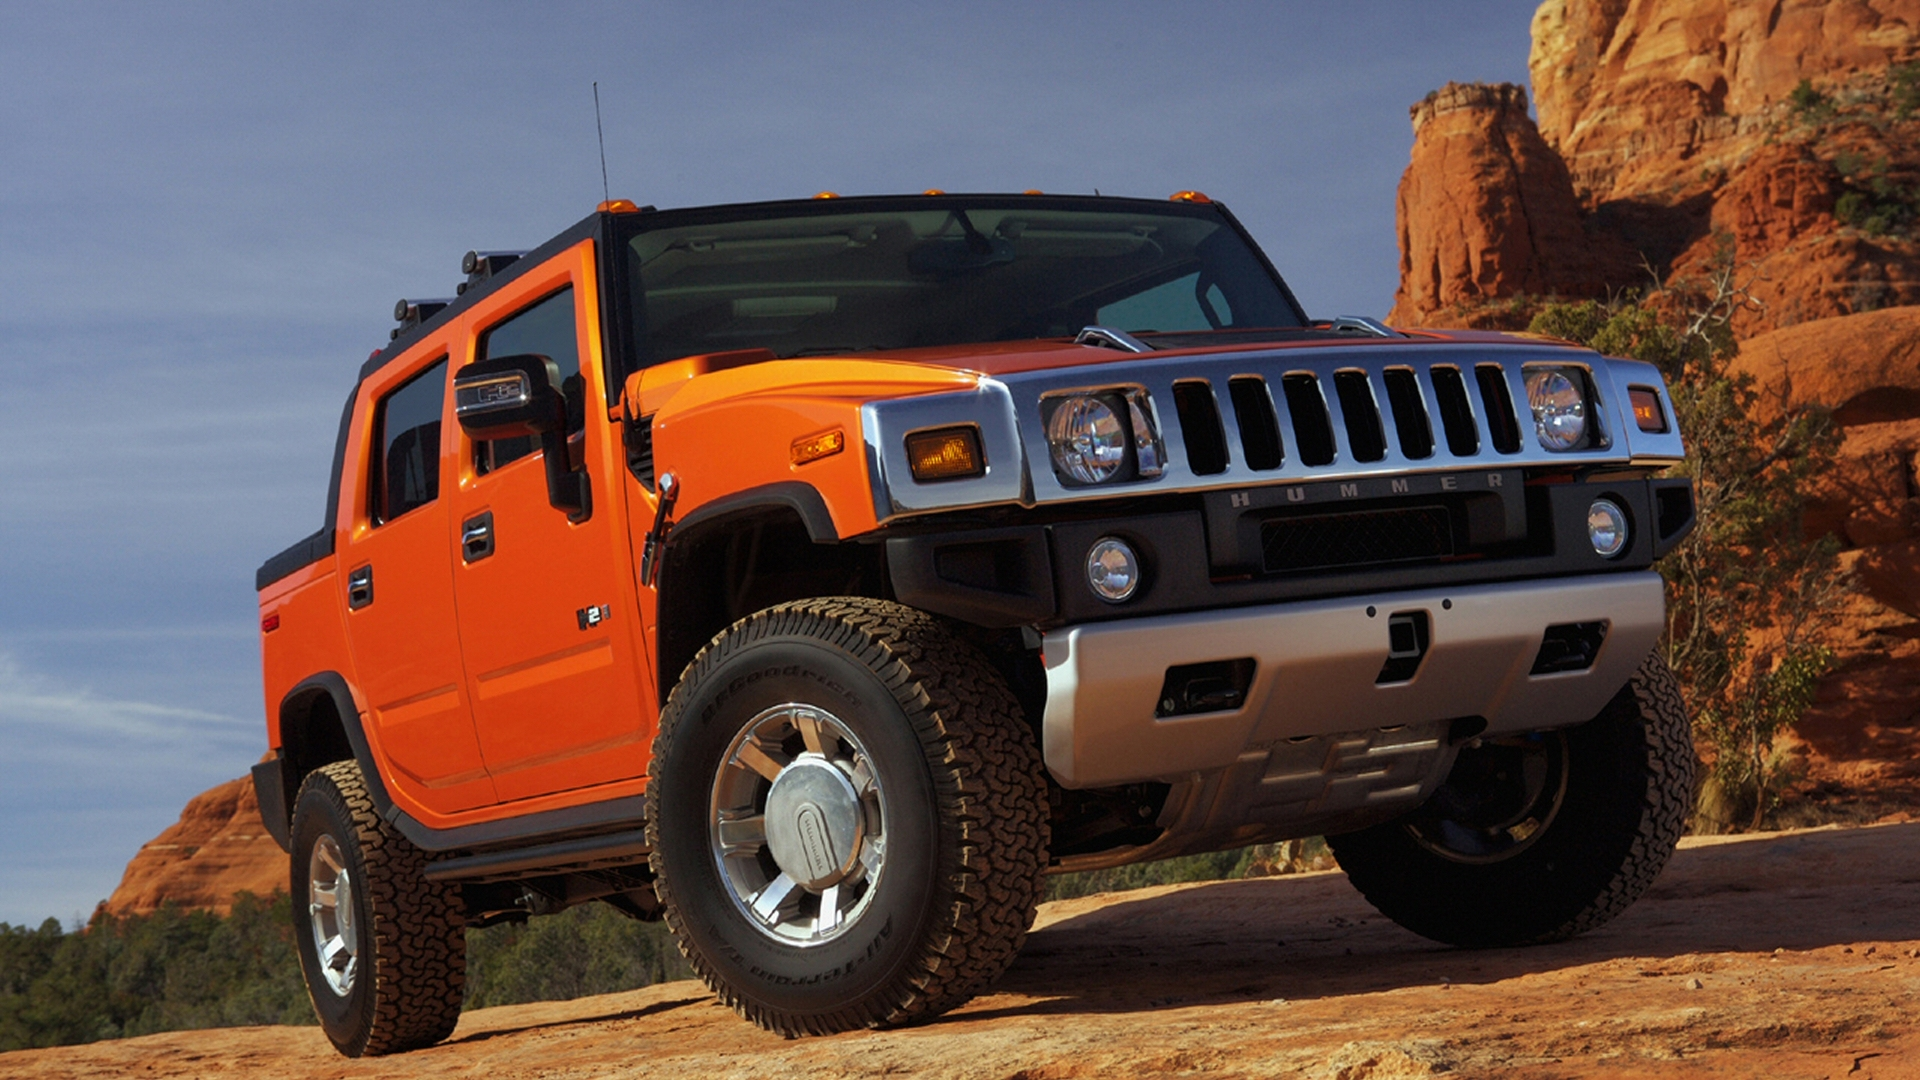 Hummer revival as electric SUV could actually happen